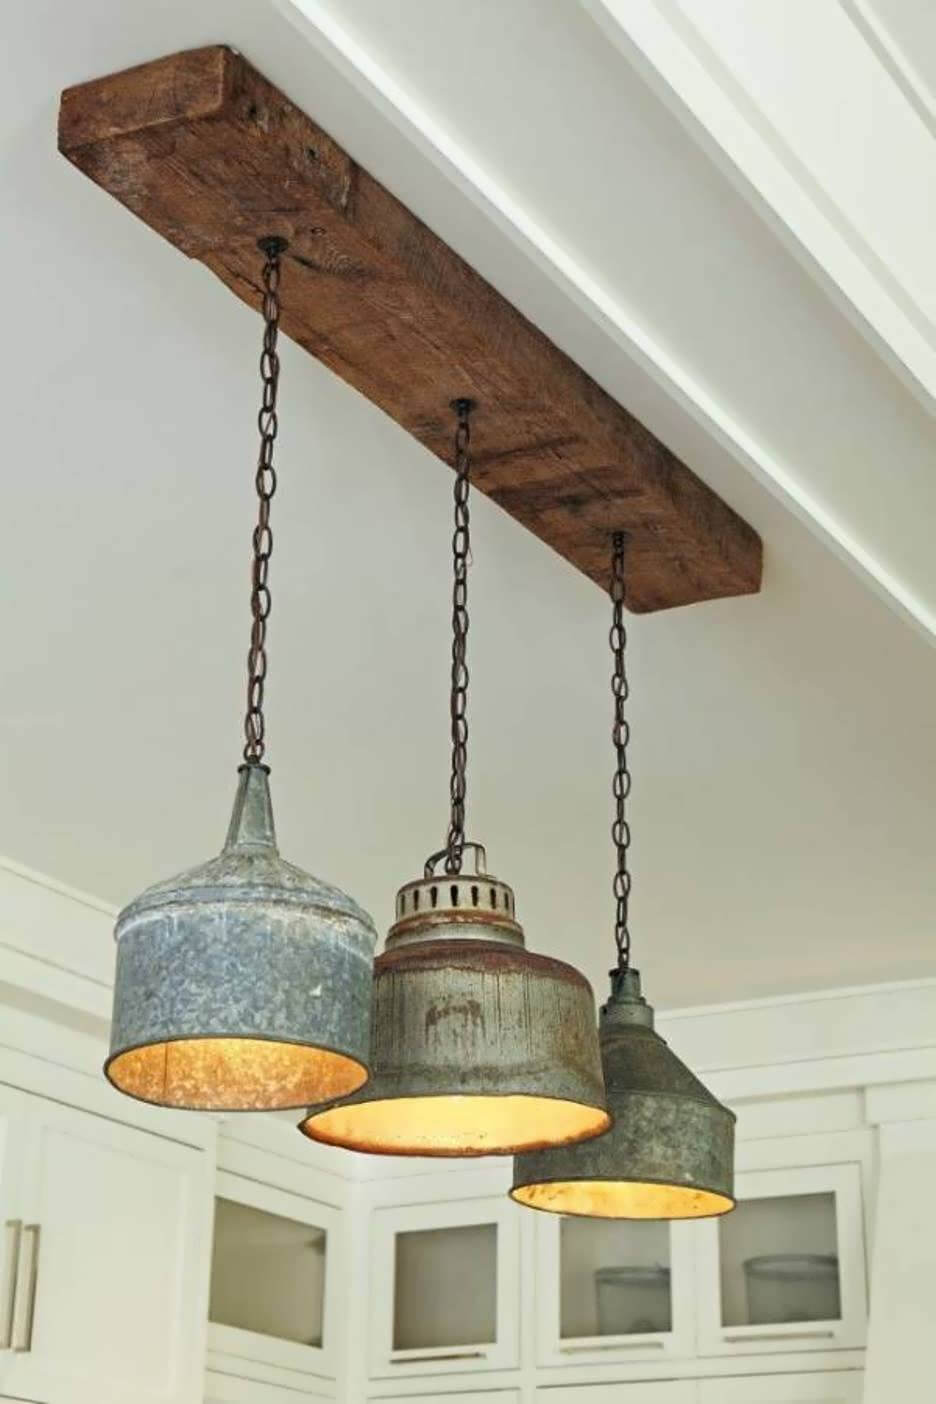 Antique Metal Fixtures Hanging from Timber Beam